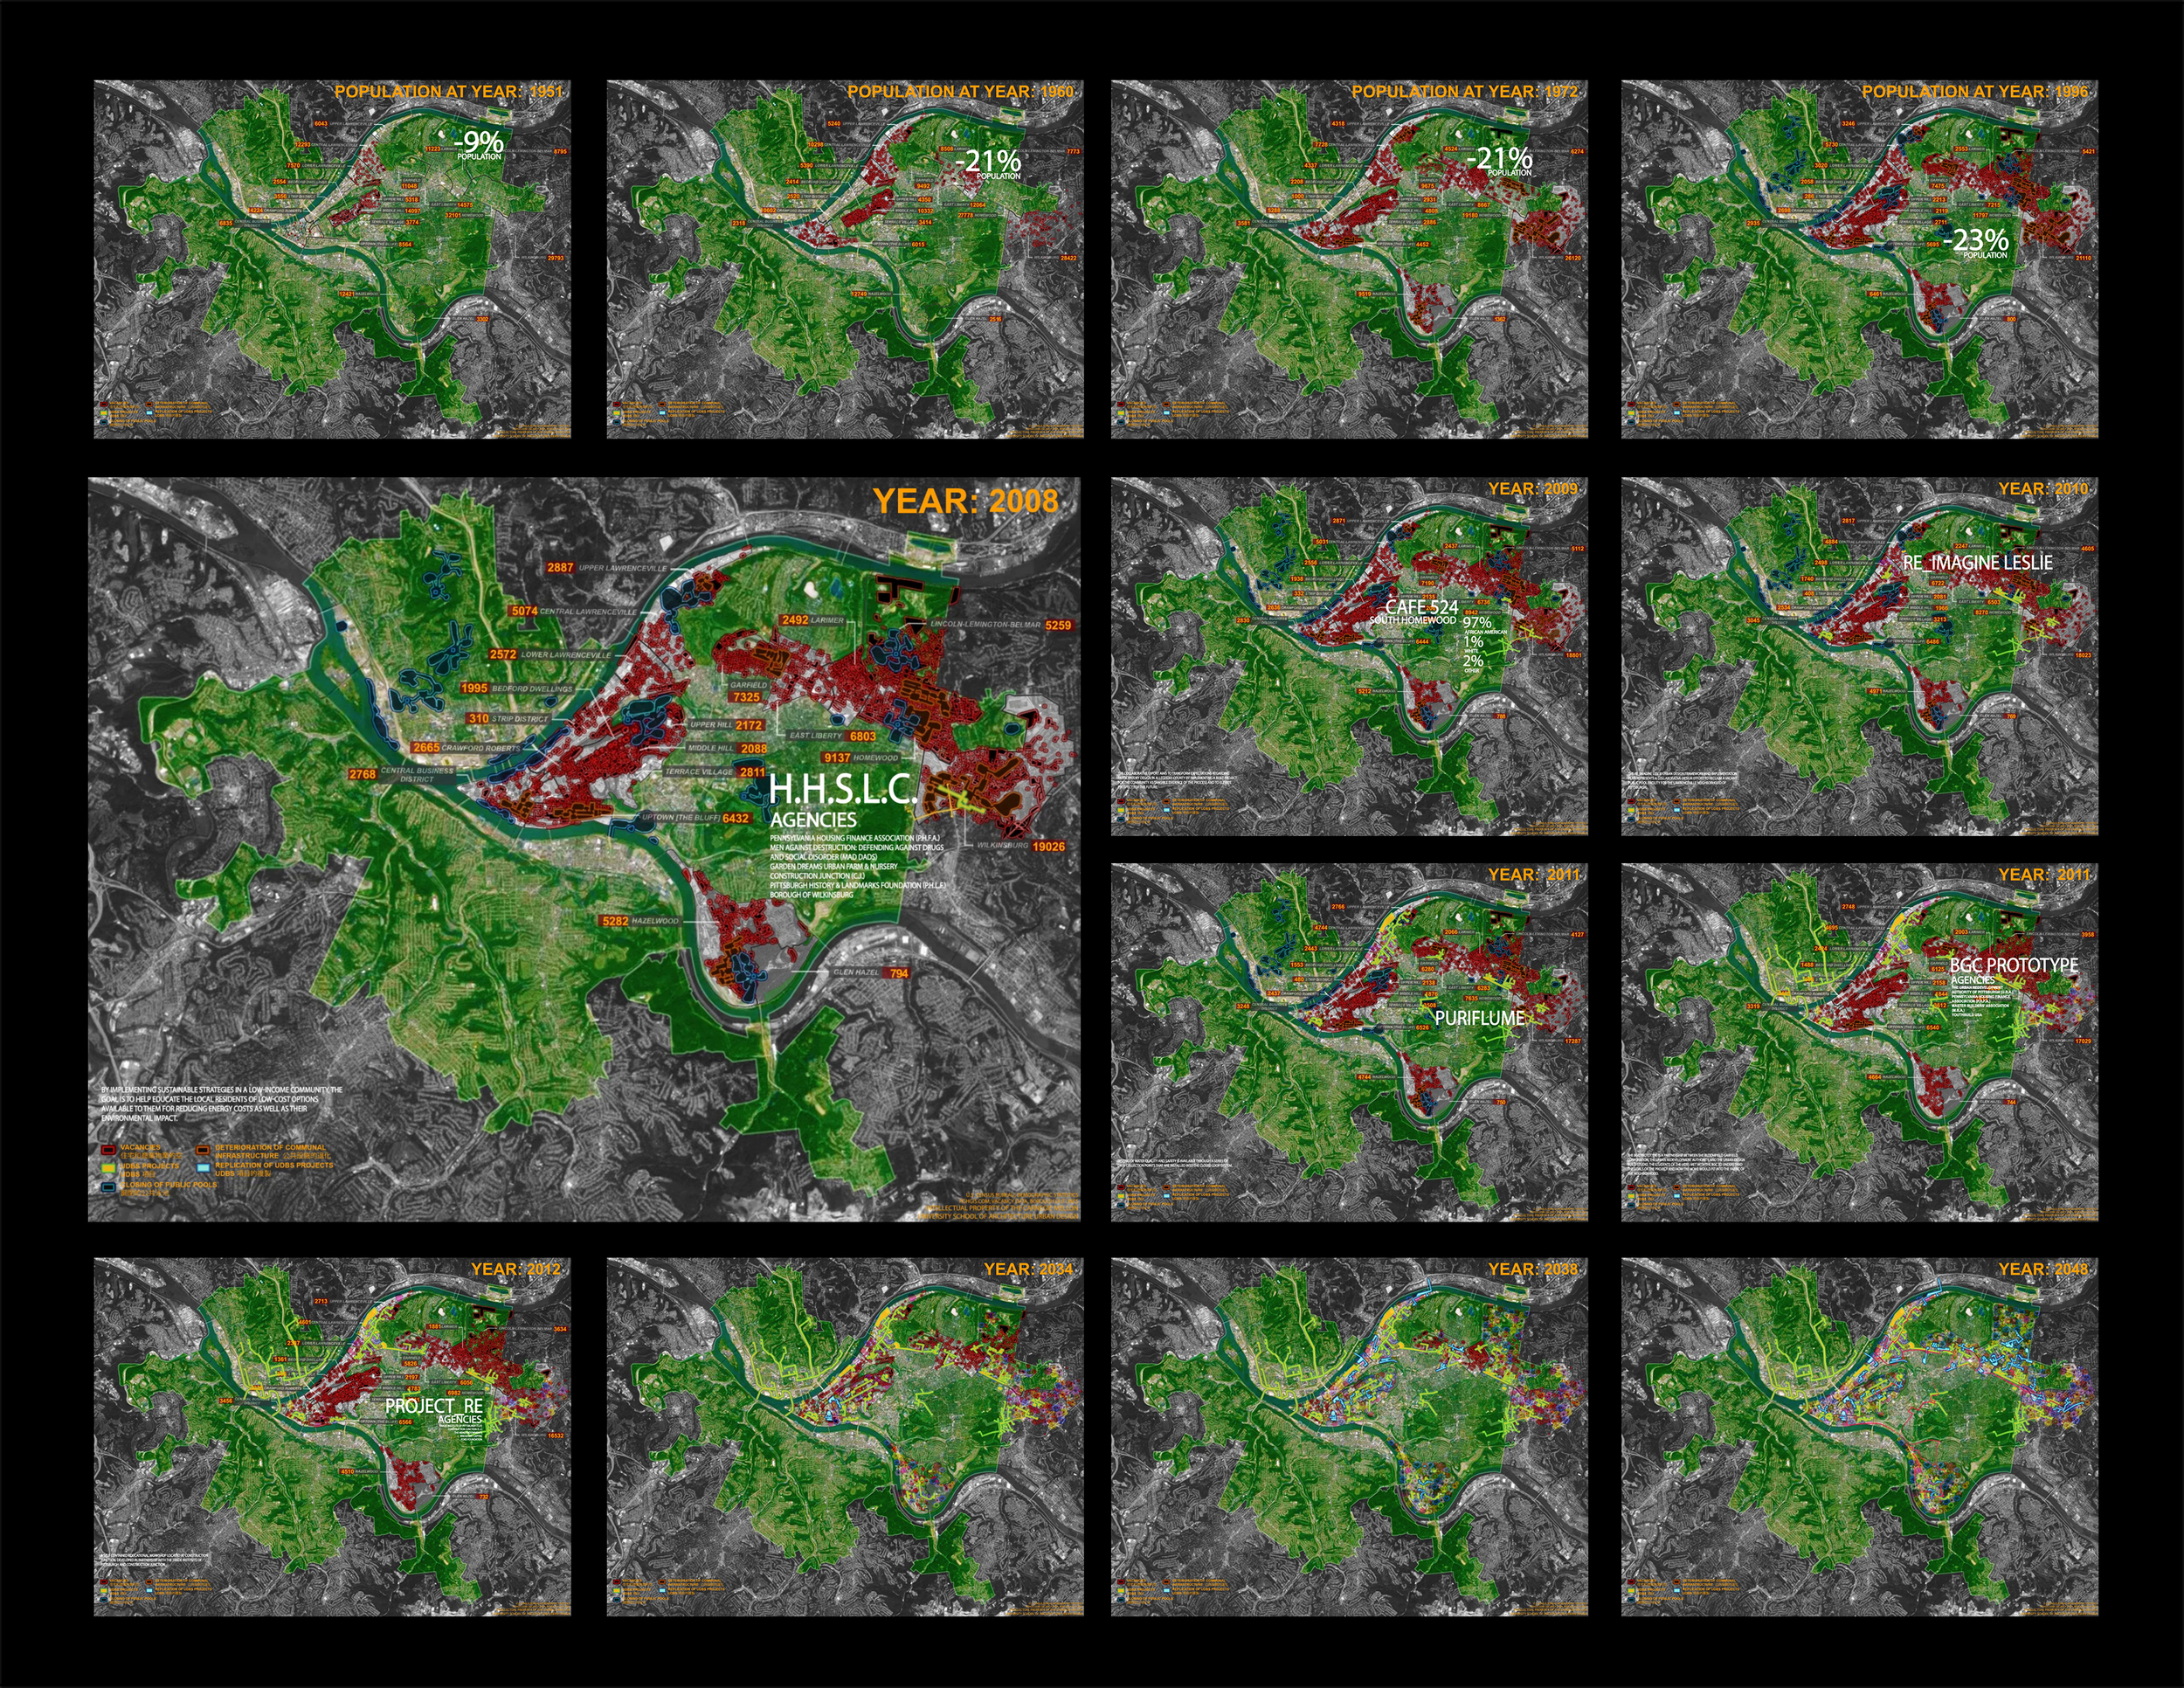 Stills from mapping animation illustrating change as a result of catalytic demonstration projects.